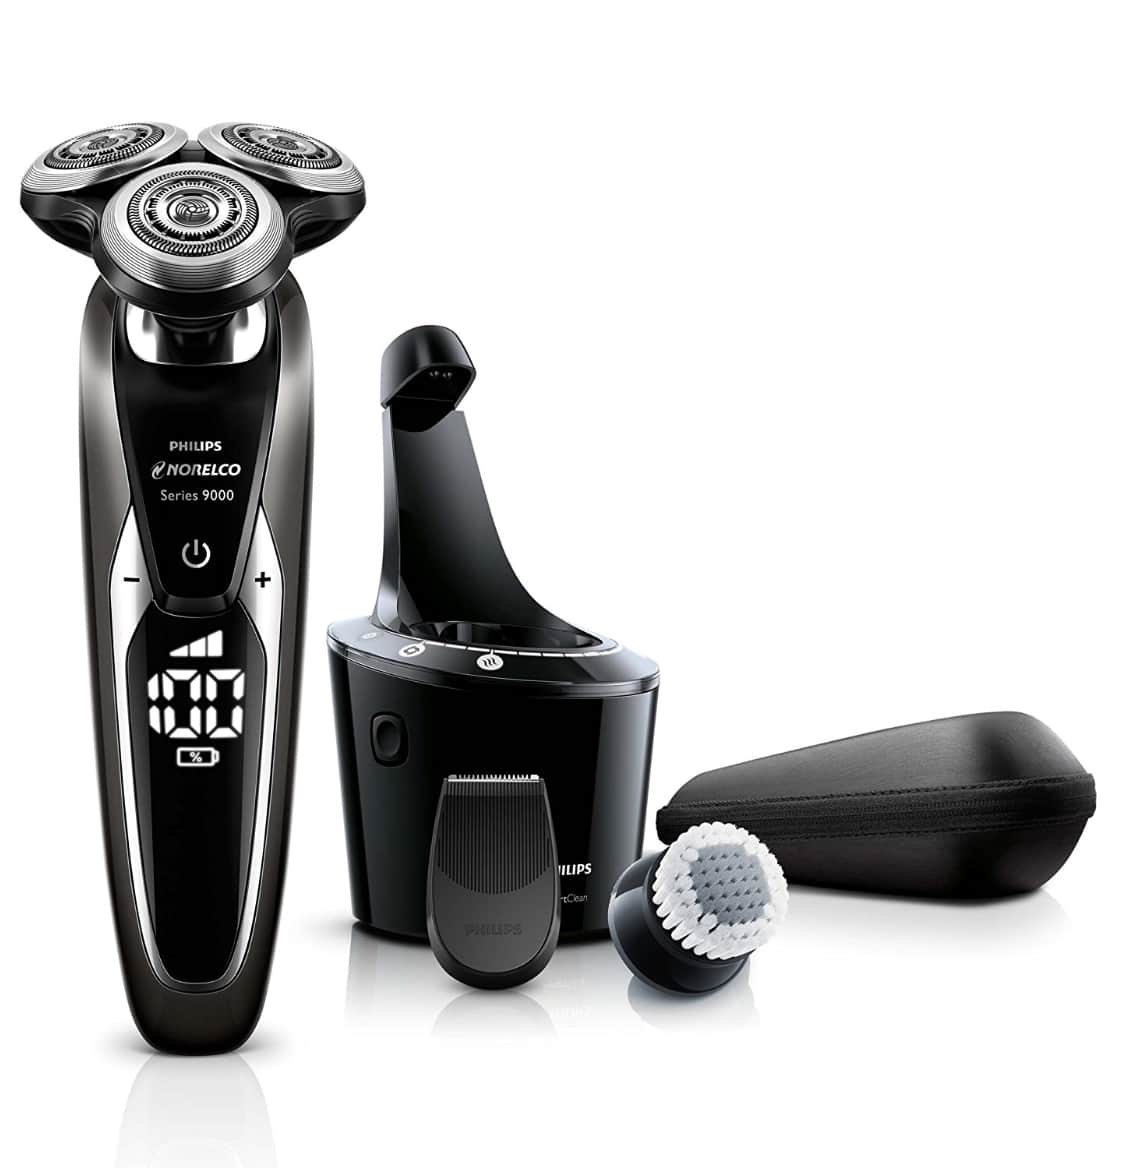 Ended...[Amazon] Philips Norelco Electric Shaver 9700, Cleansing Brush, Smart clean, $179.99